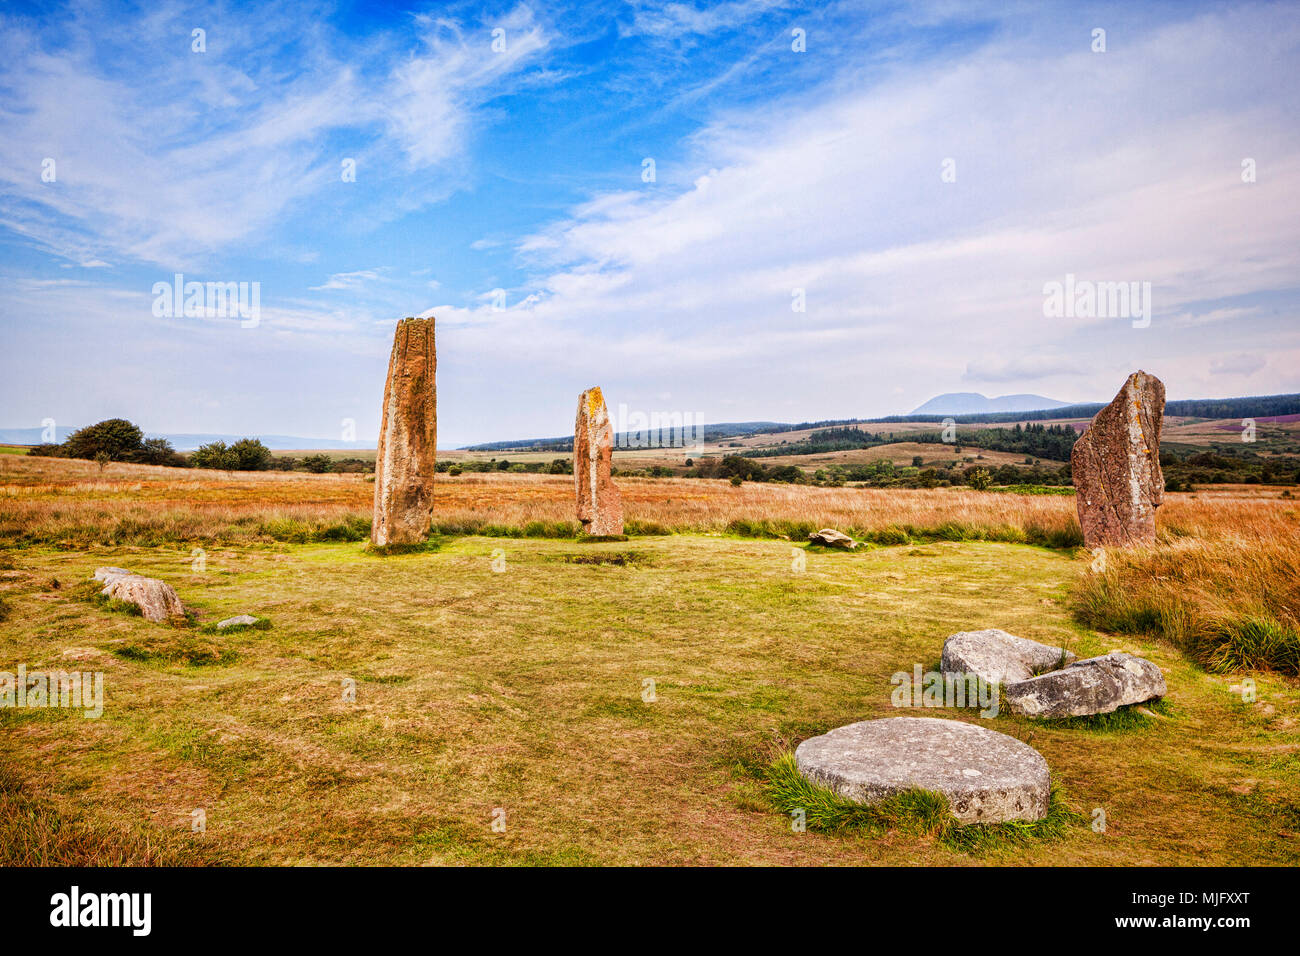 Machrie Moor 2 stone circle, a 4000 year old megalithic monument on the island of Arran, North Ayrshire, Scotland. - Stock Image